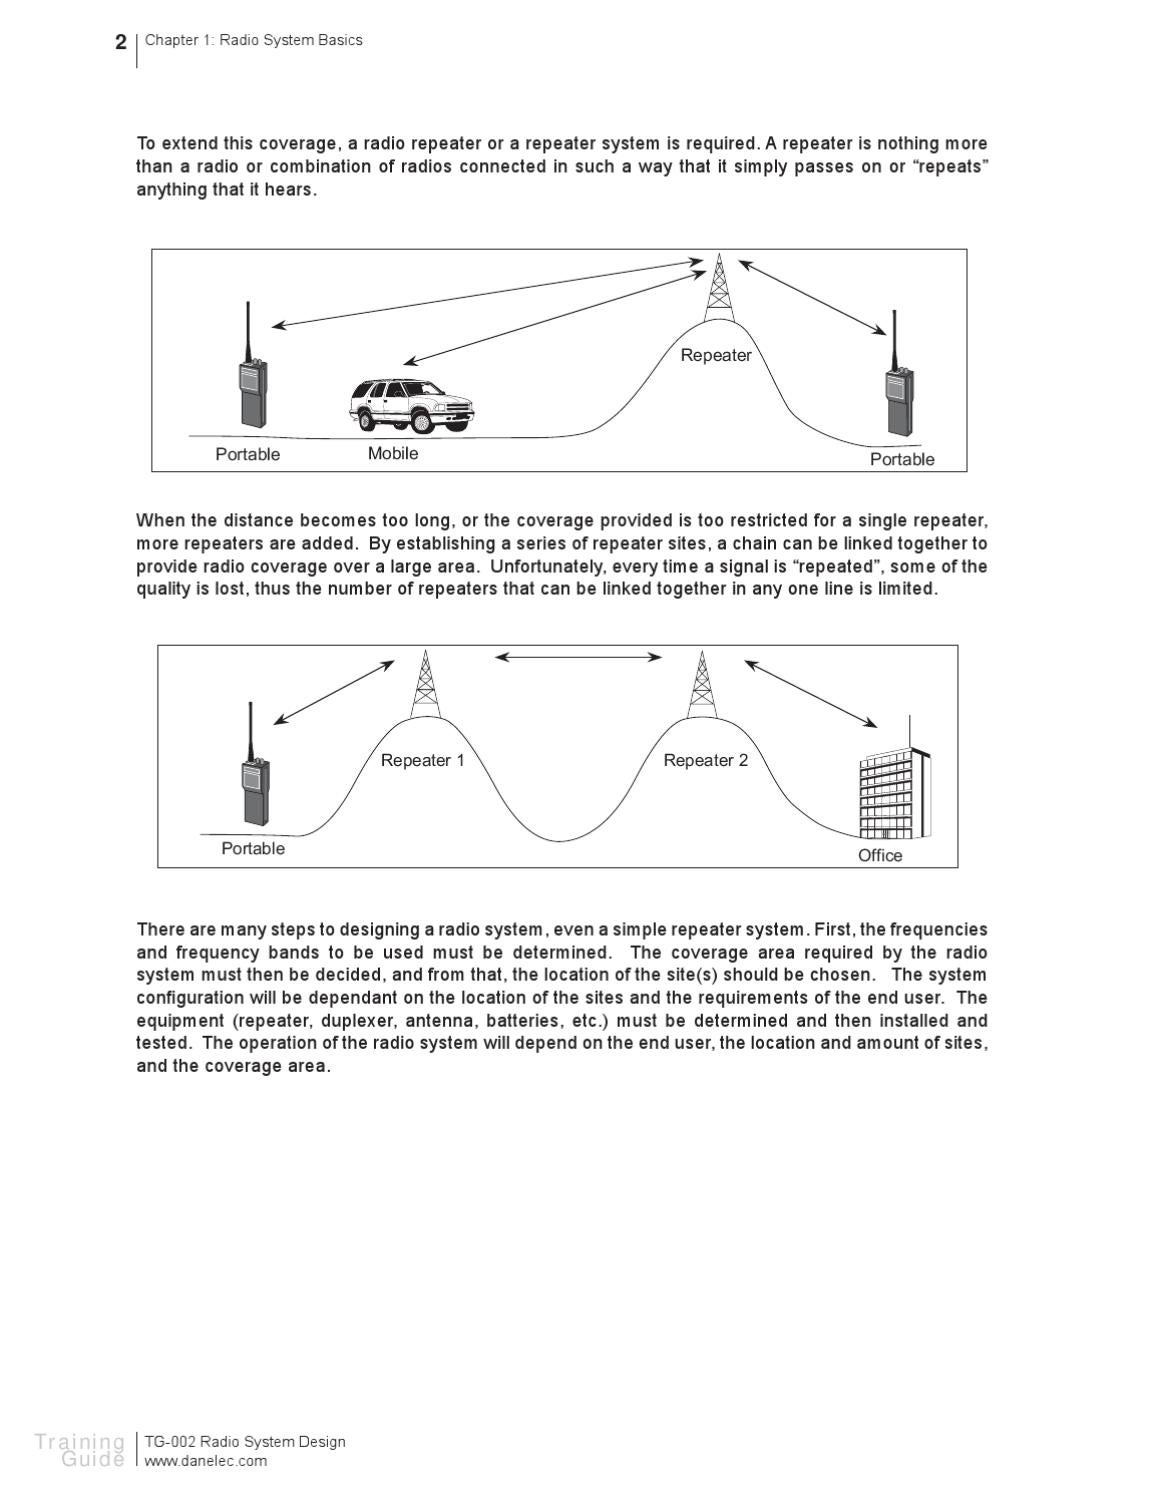 Land Mobile Radio System Training and Design Guide by Web